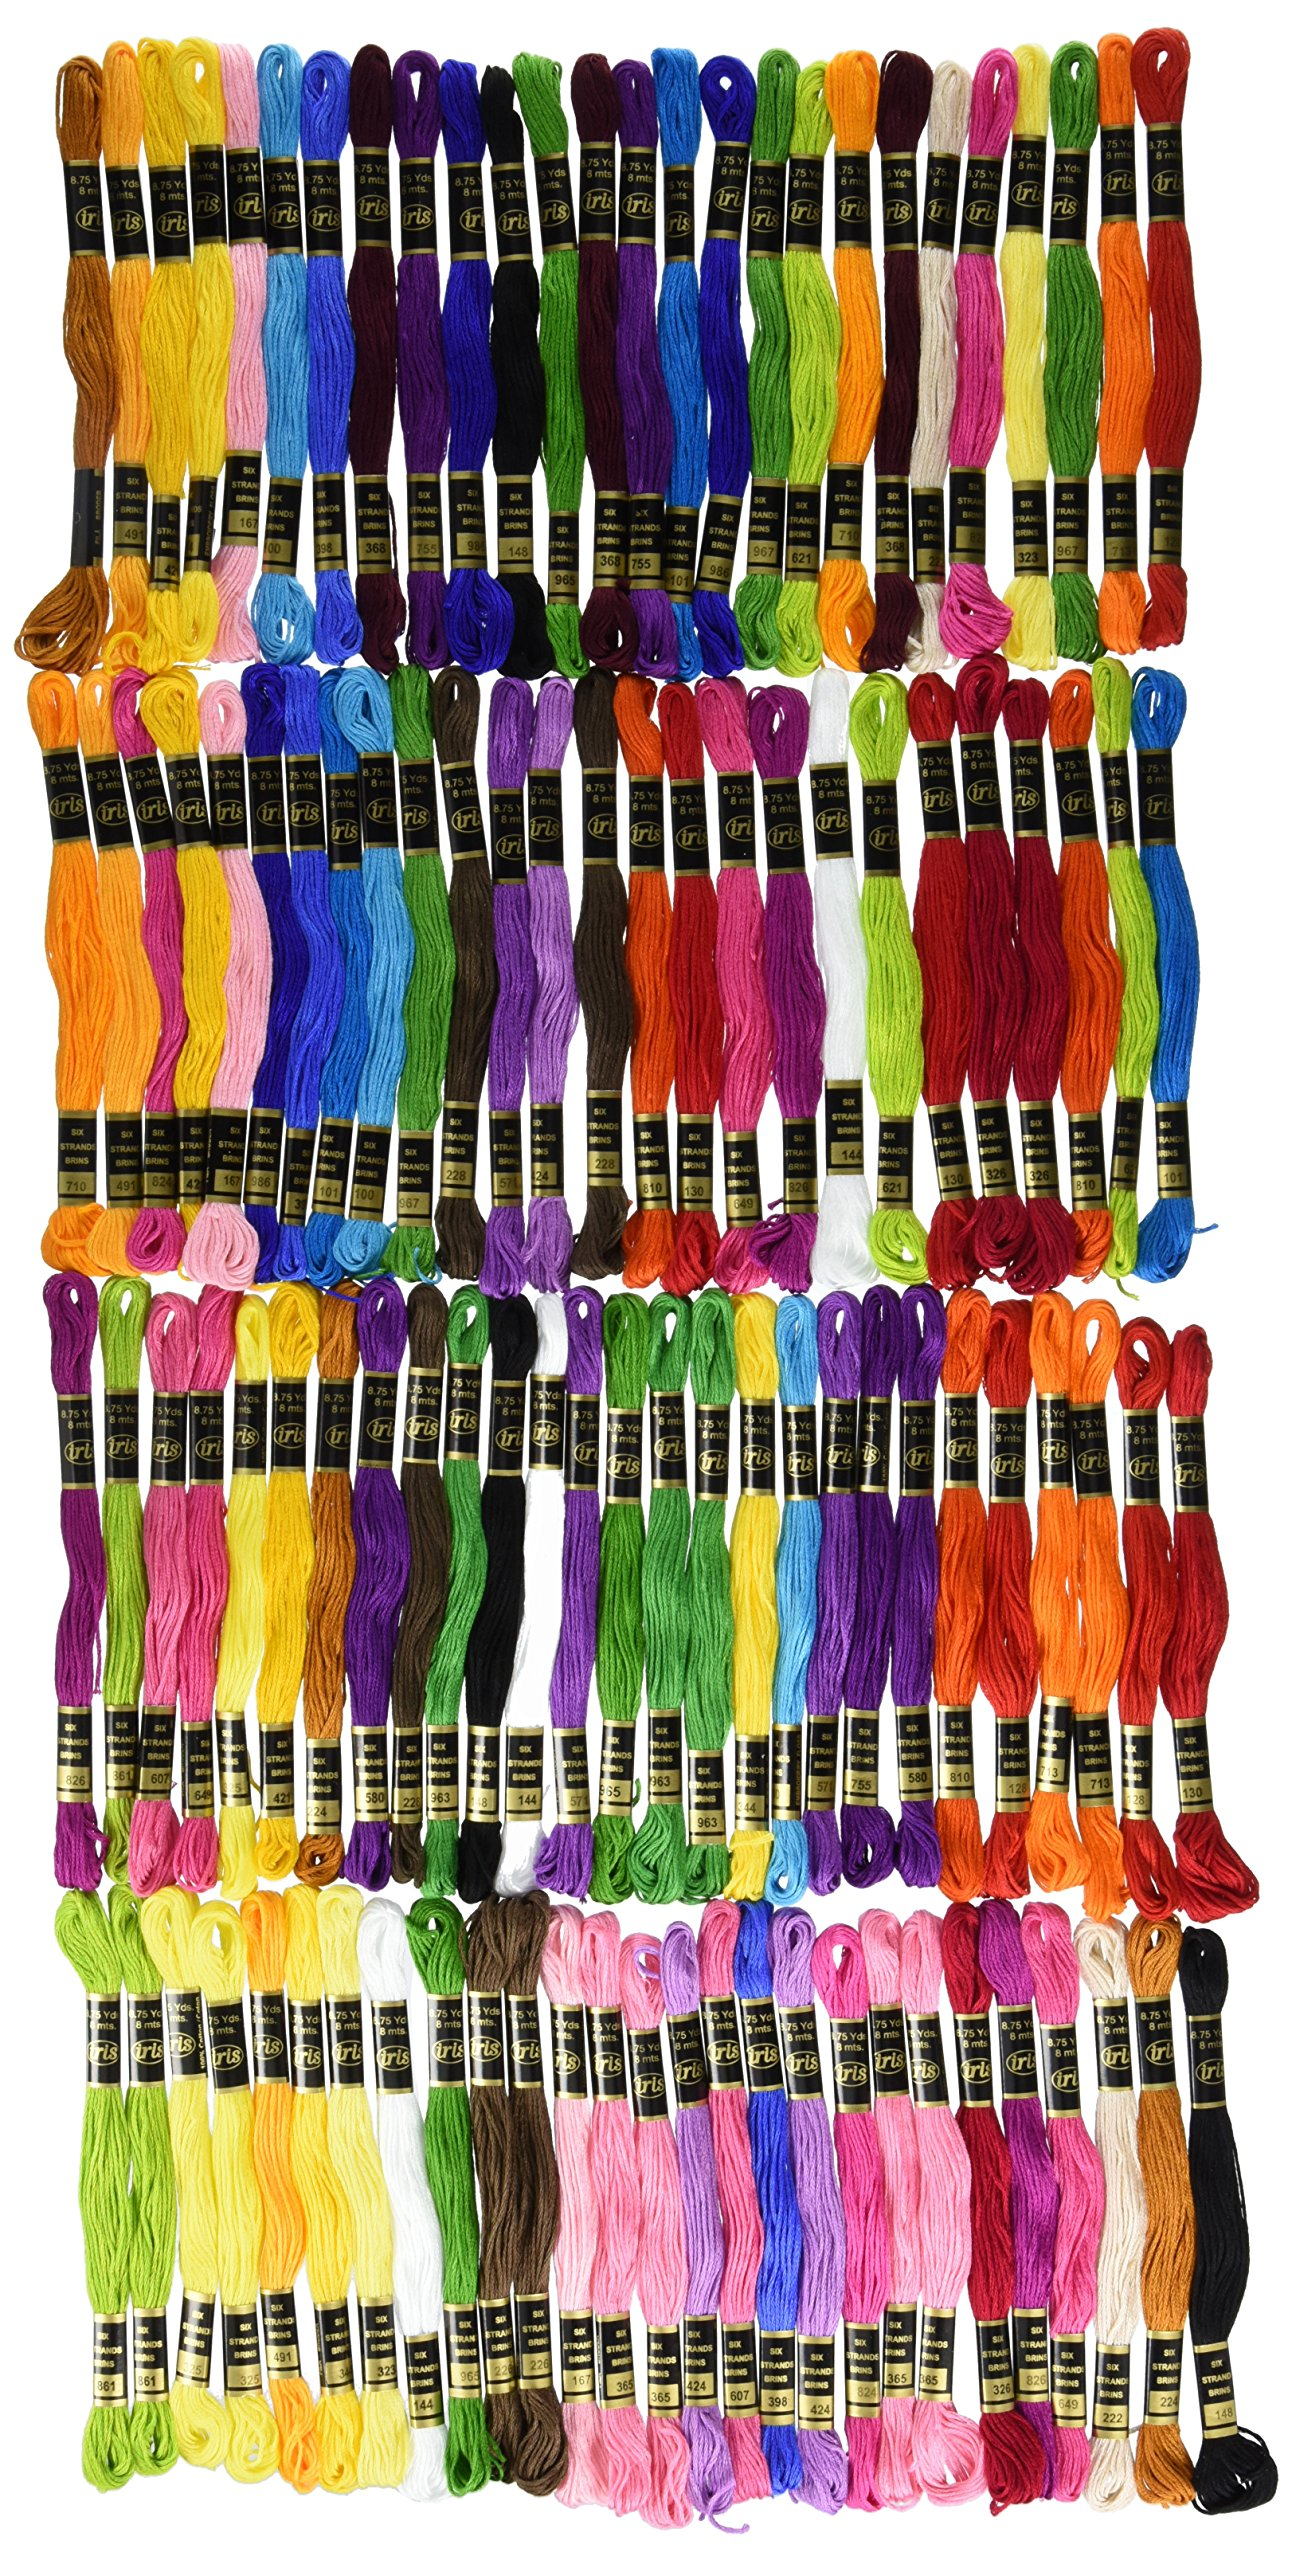 Iris 1265 105-Pack Embroidery Giant Floss Pack, 8m by IRIS USA, Inc.